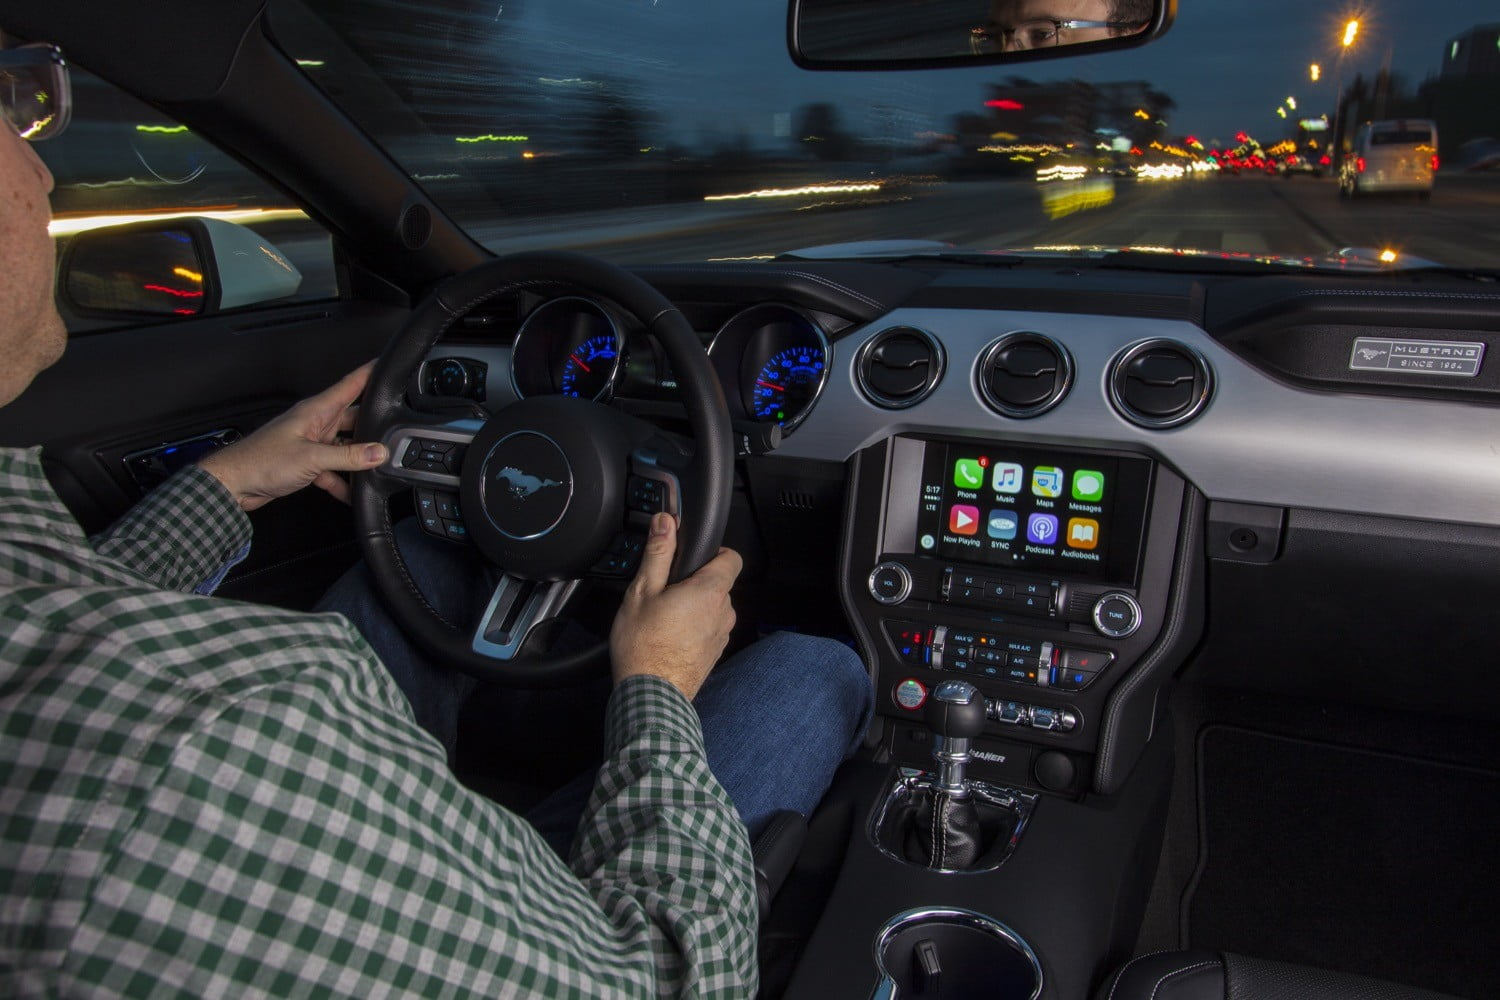 Connectivity features include apple carplay and android auto - The Notable Exception Is Toyota Which Continues To Resist Carplay And Google S Rival Software Android Auto Due To Safety And Privacy Concerns